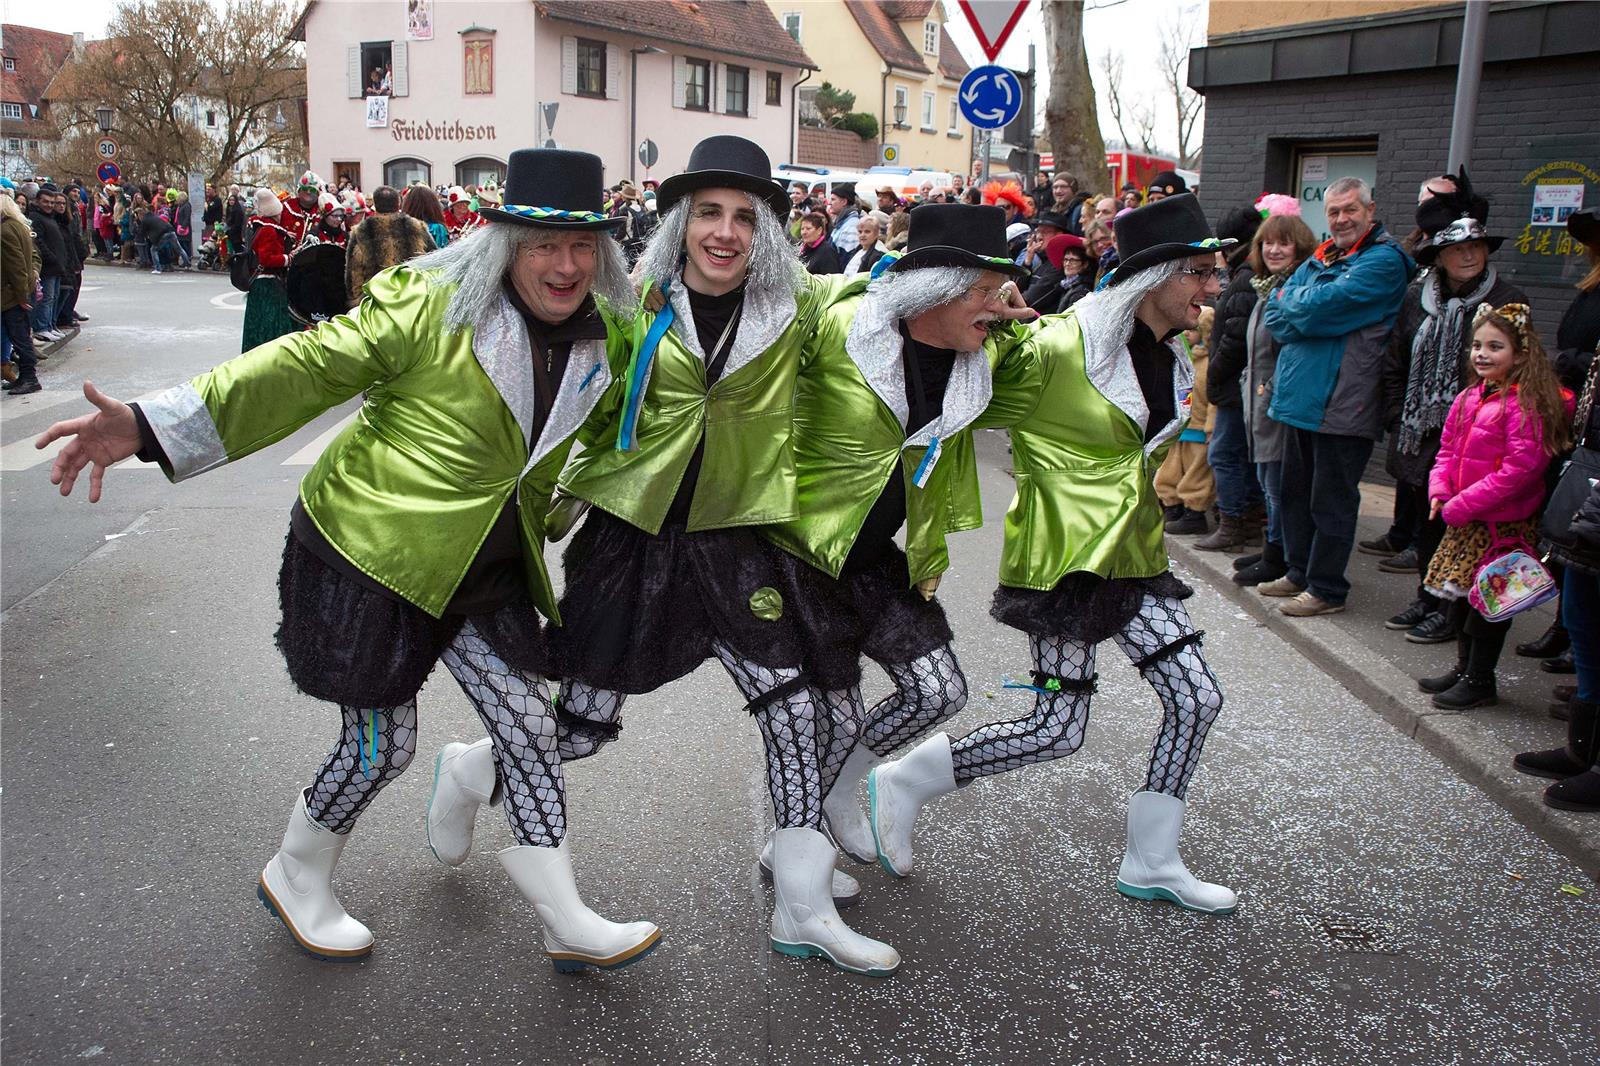 Association Les Machores<br /> . Fasnet 2017 · Ommzug in Rottenburg. Bild: Franke